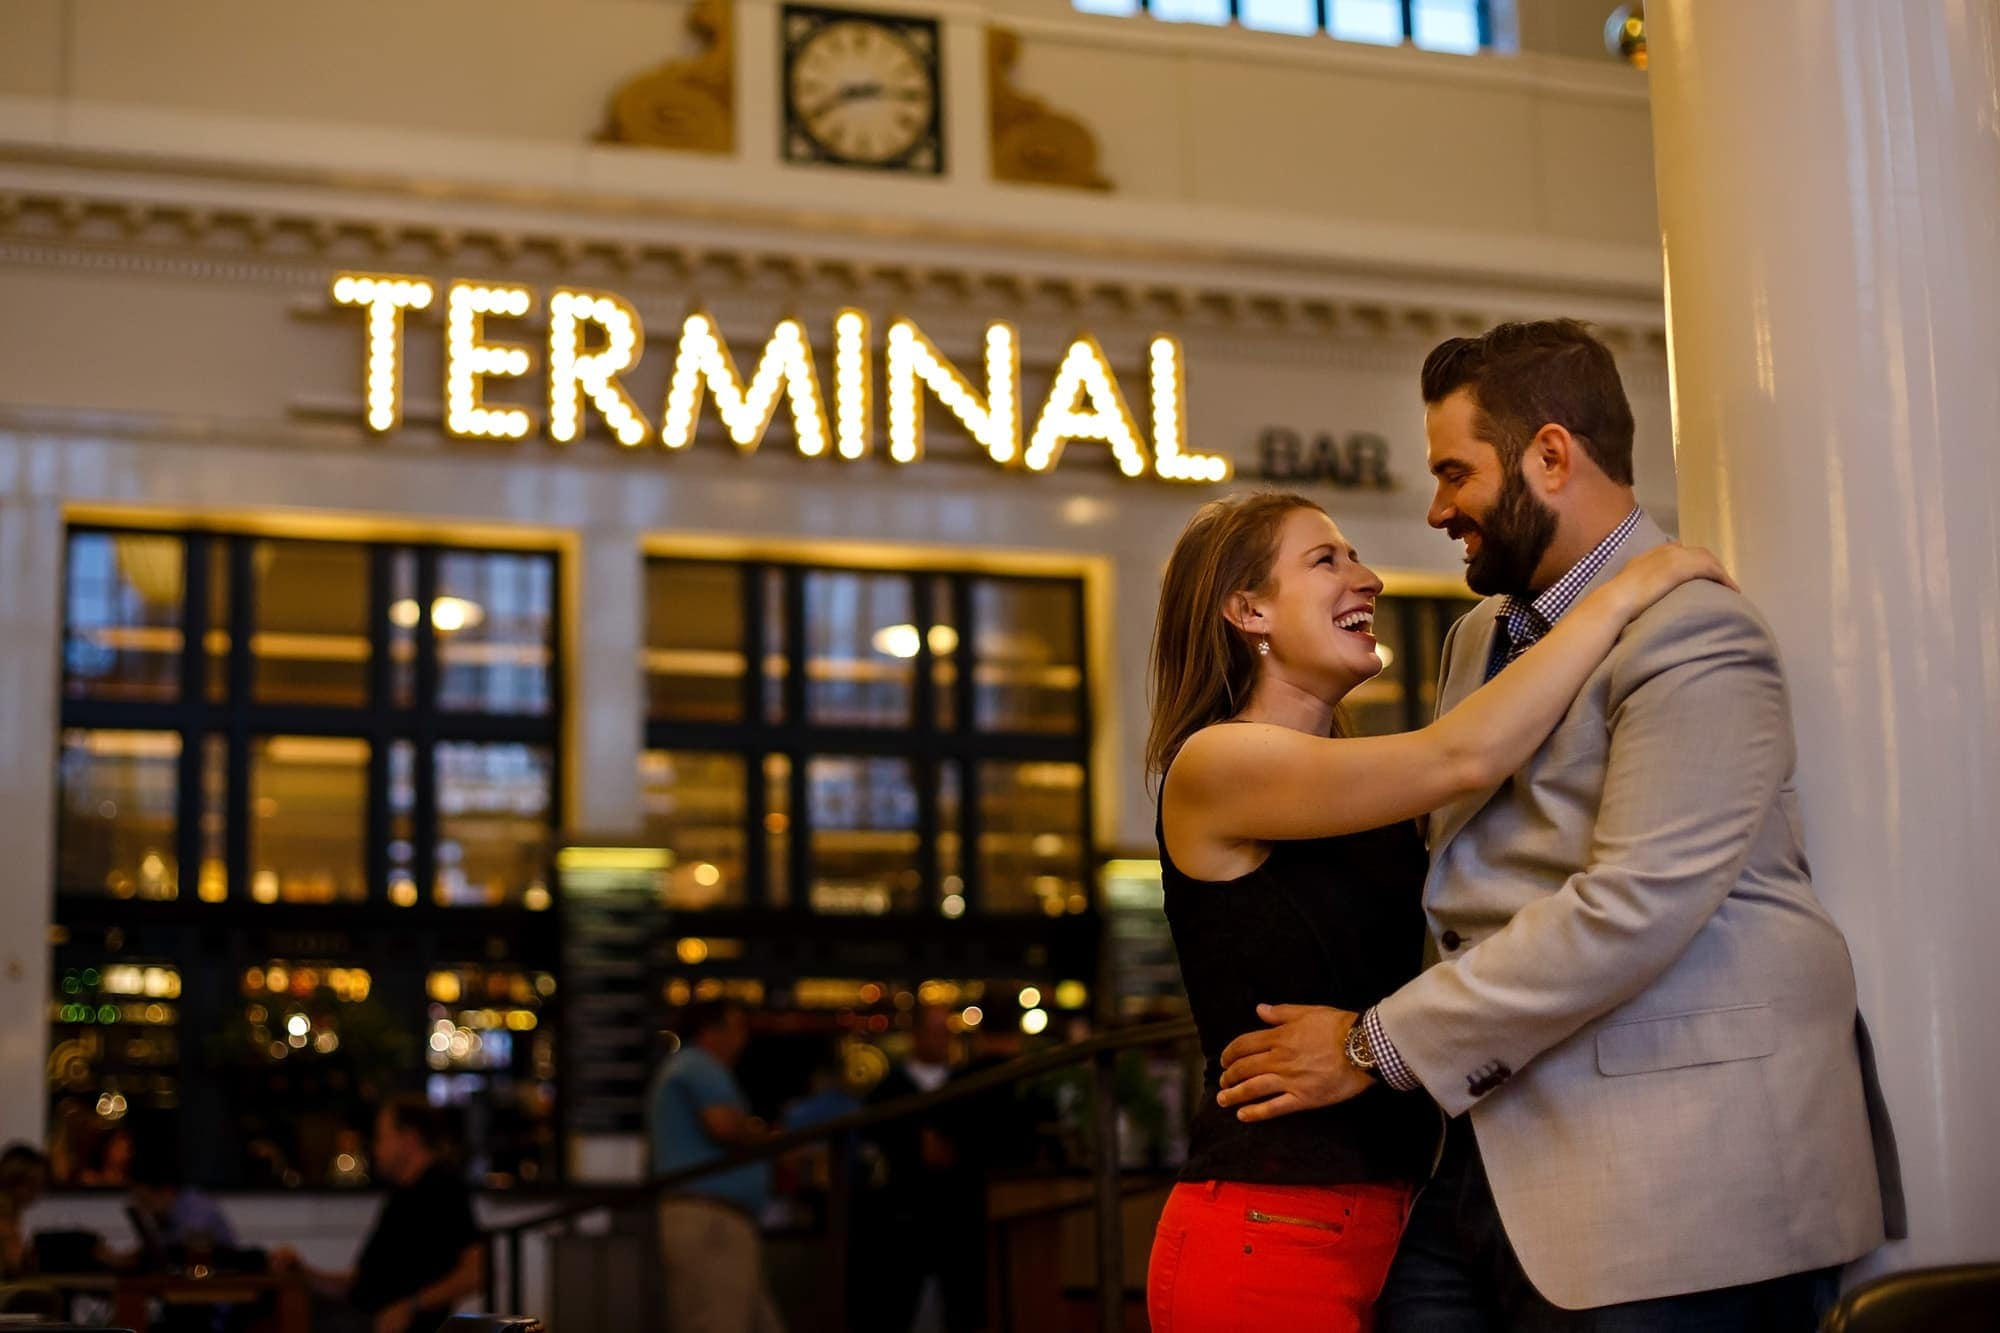 The Terminal bar is a great place to share a drink or a moment together like Devan and Josh are doing